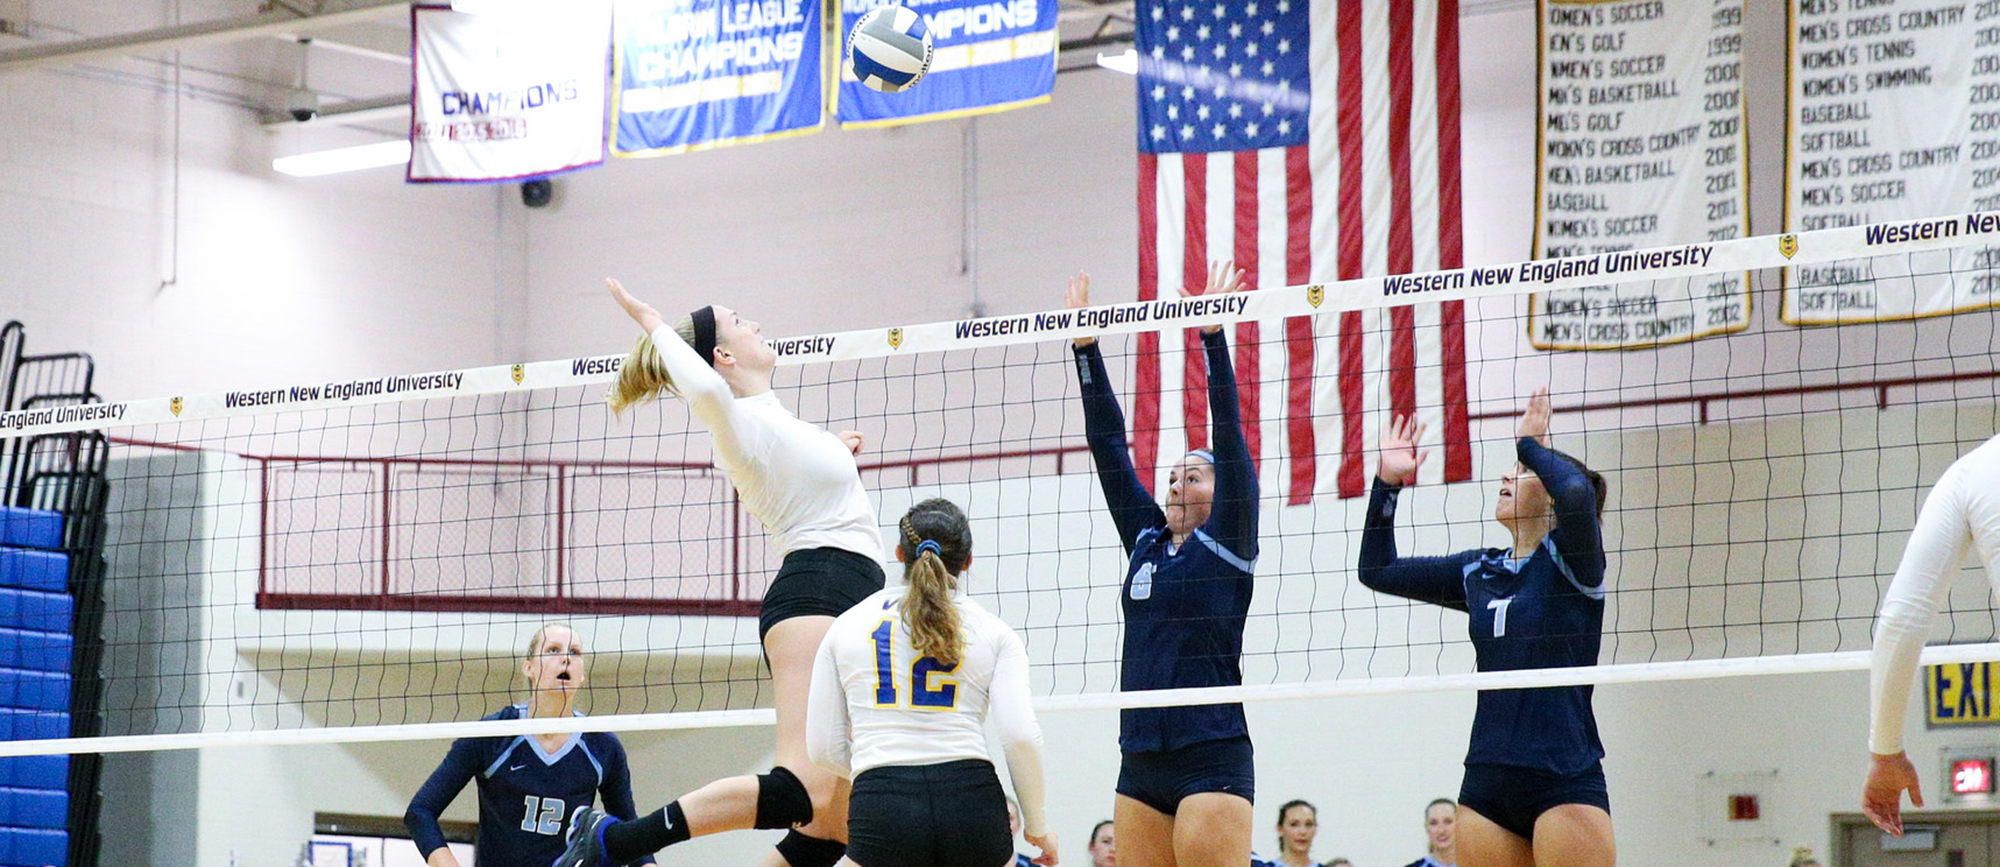 Junior Cassie Holmes recorded a team-high nine kills in Western New England's 3-0, CCC Tournament quarterfinal loss to Salve Regina on Tuesday night. (Photo by Chris Marion)